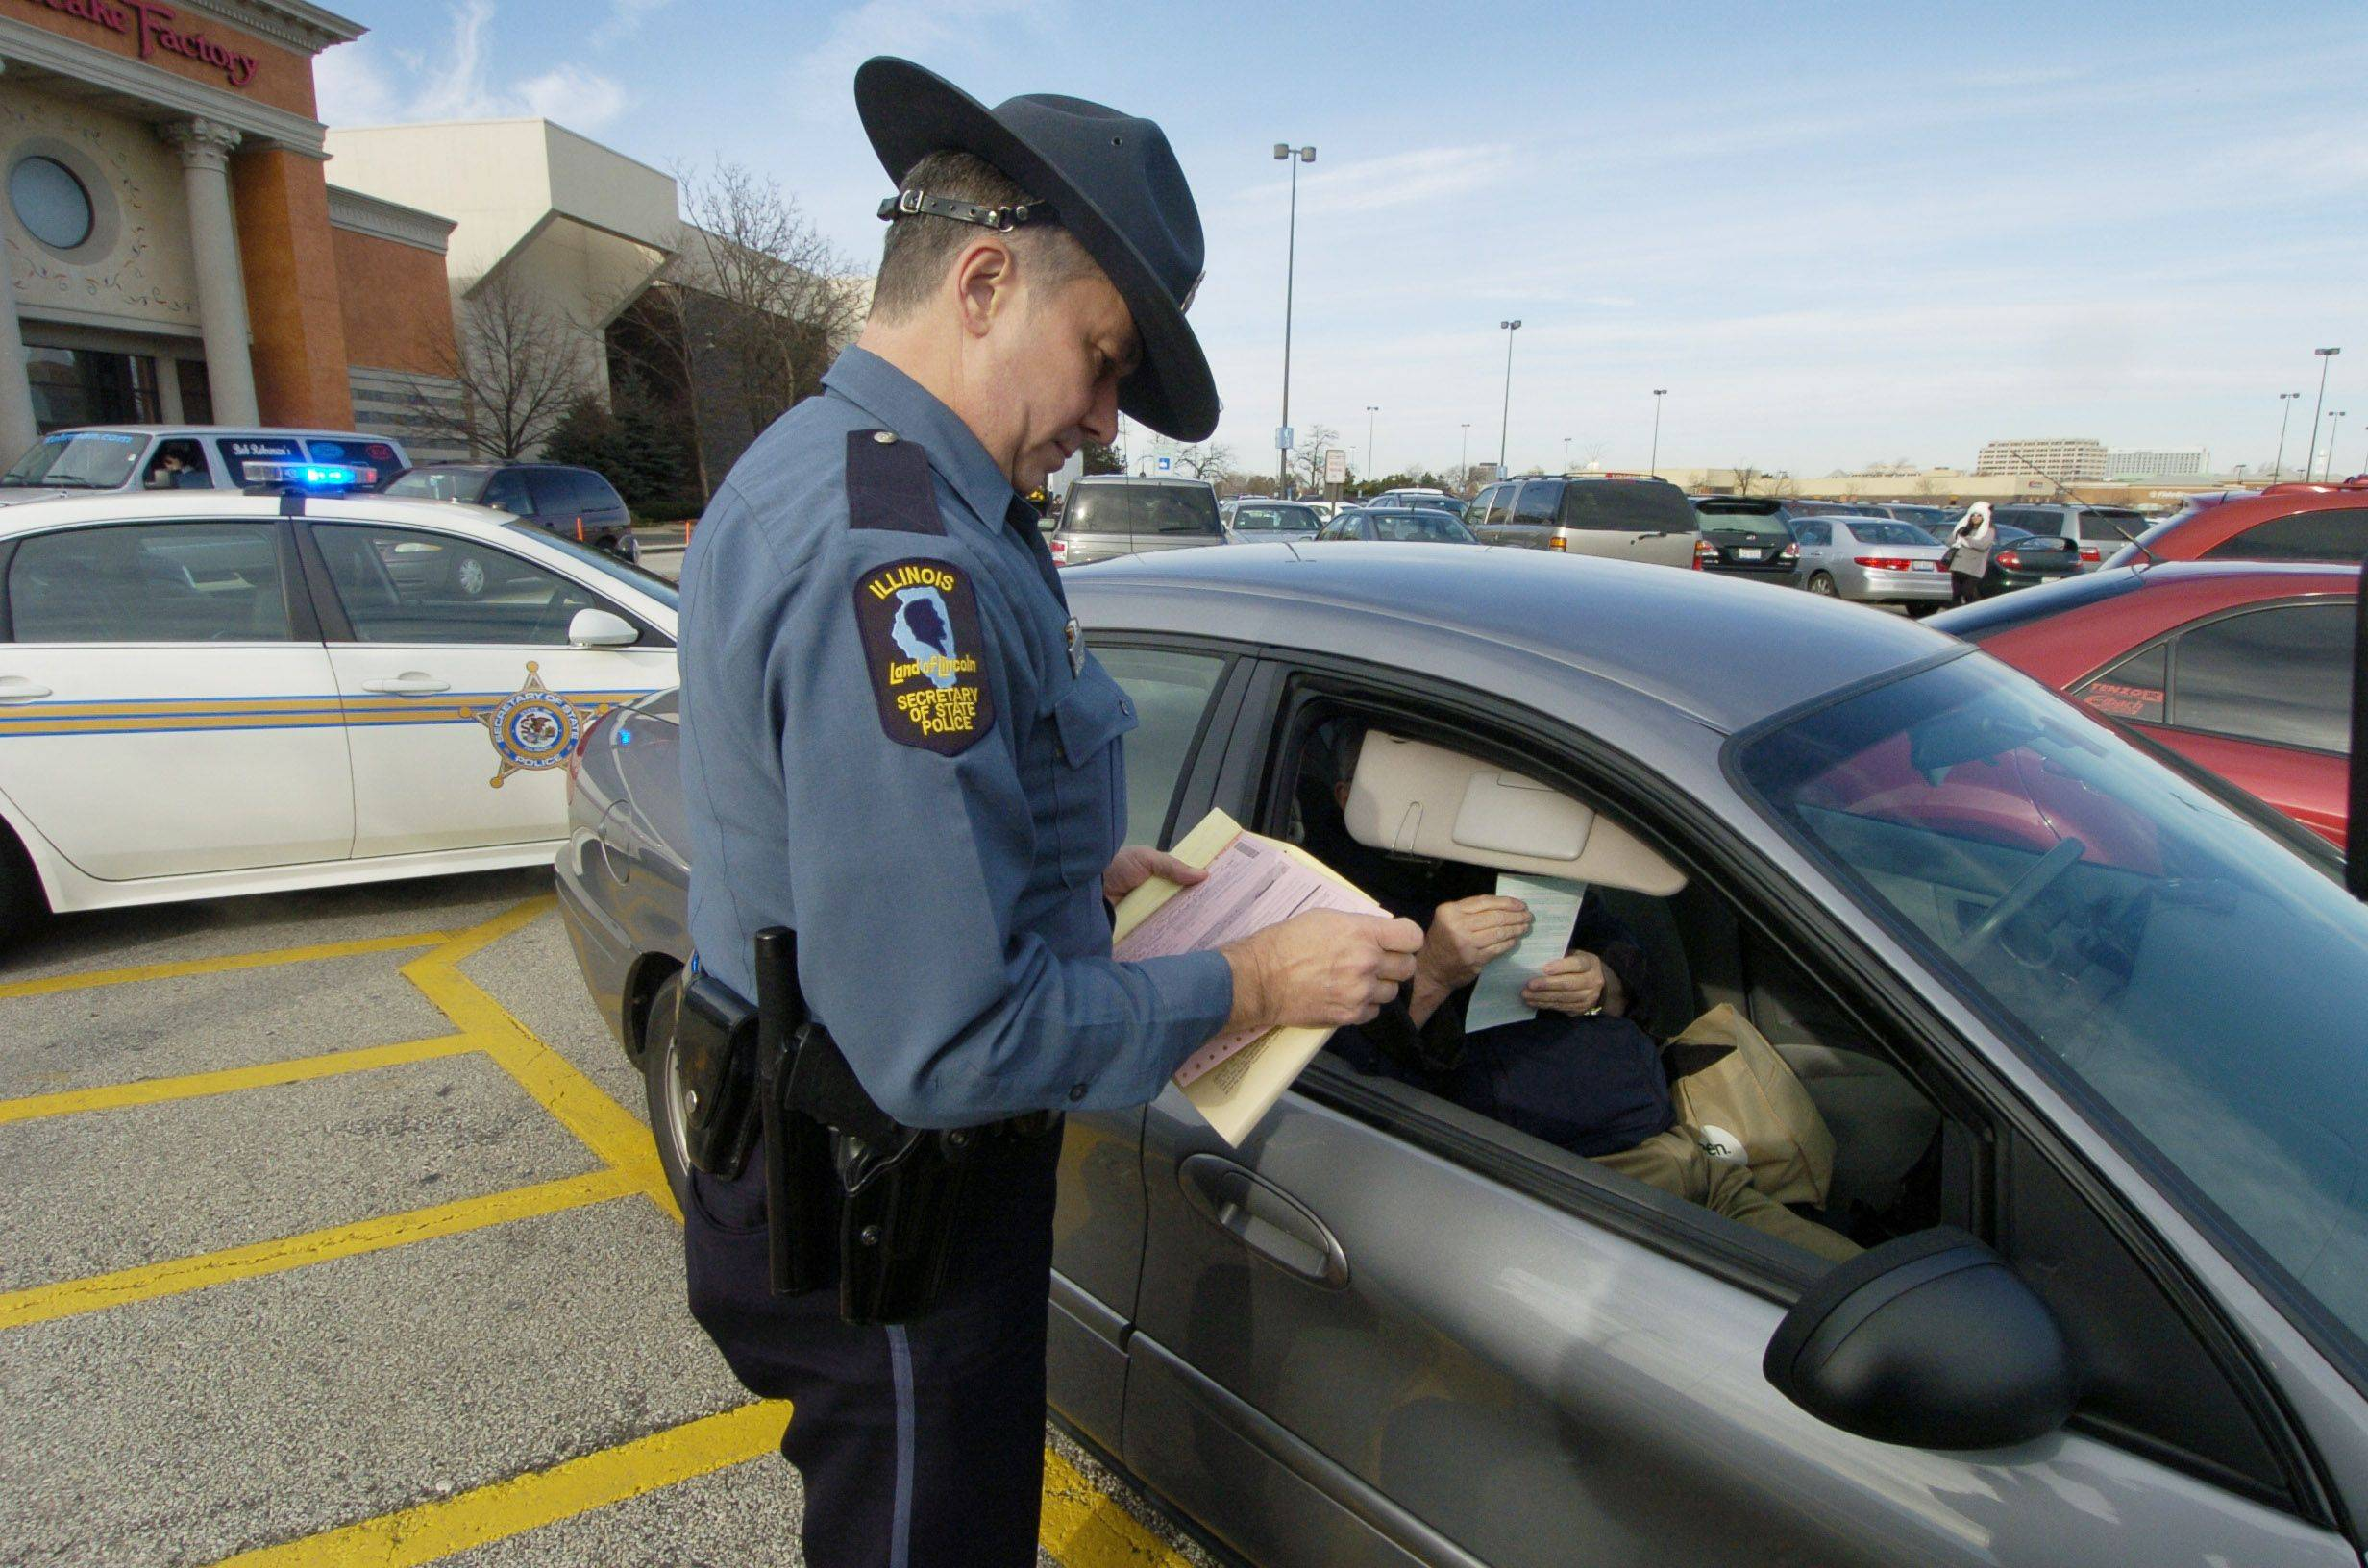 Investigator Glenn Florkow of the Illinois Secretary of State Police issues a citation to a motorist for parking improperly in a handicap space Friday outside the Woodfield mall in Schaumburg.